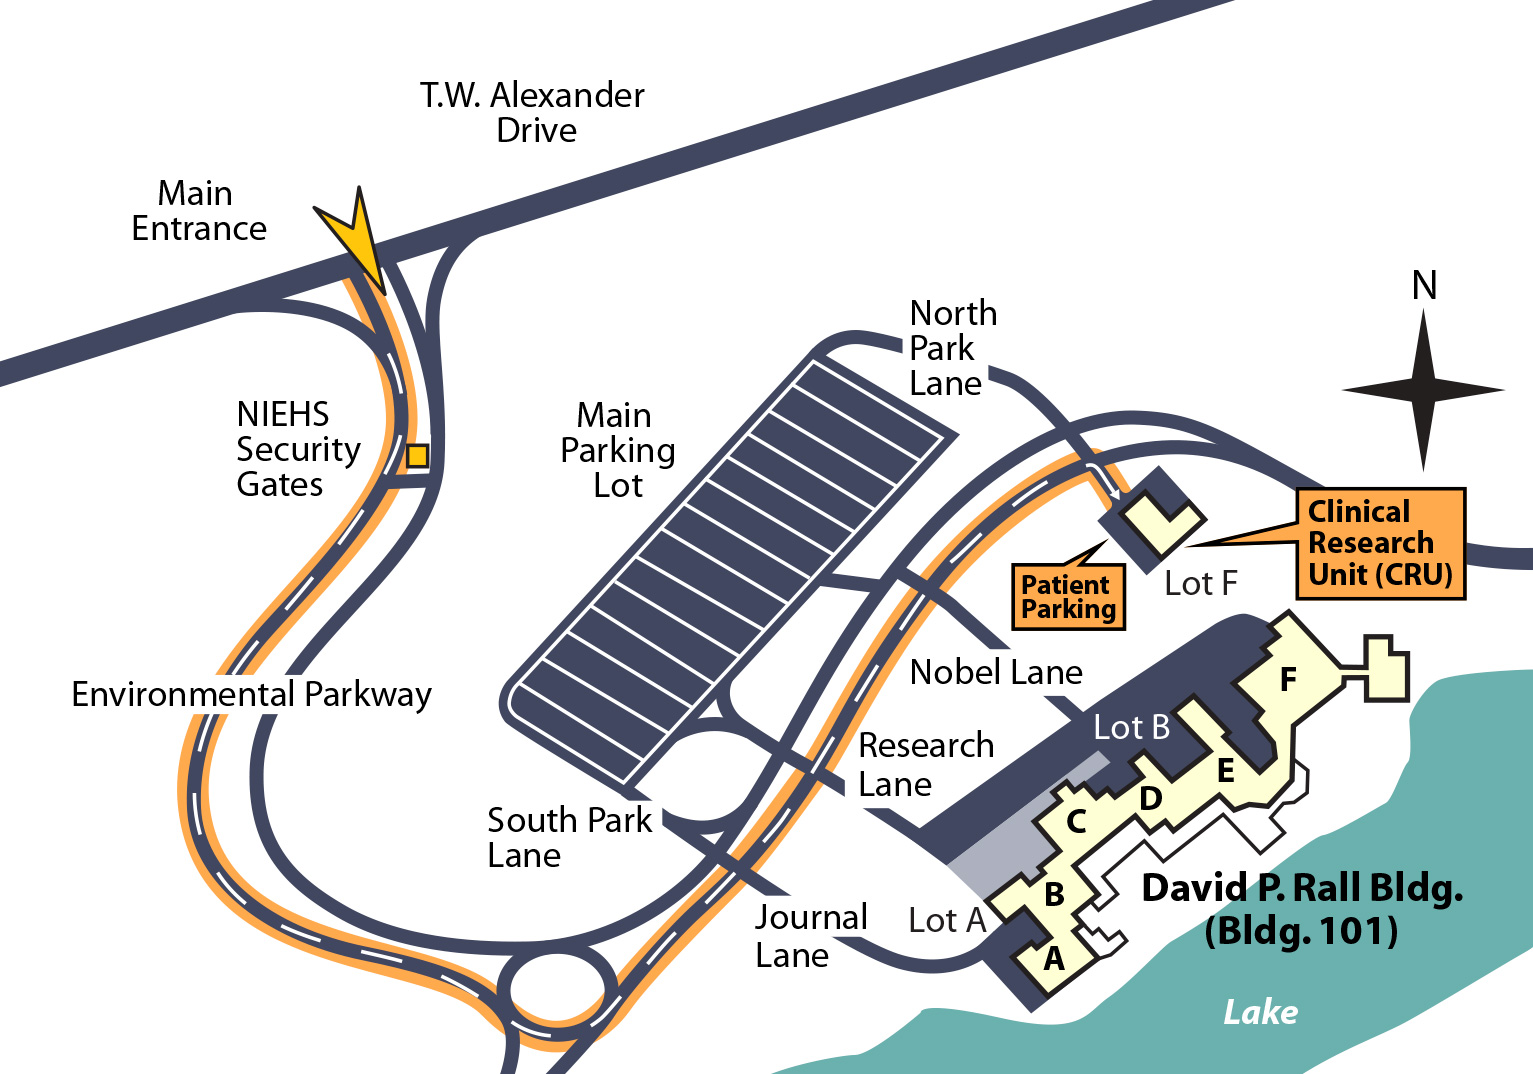 NIEHS map showing parking and CRU building